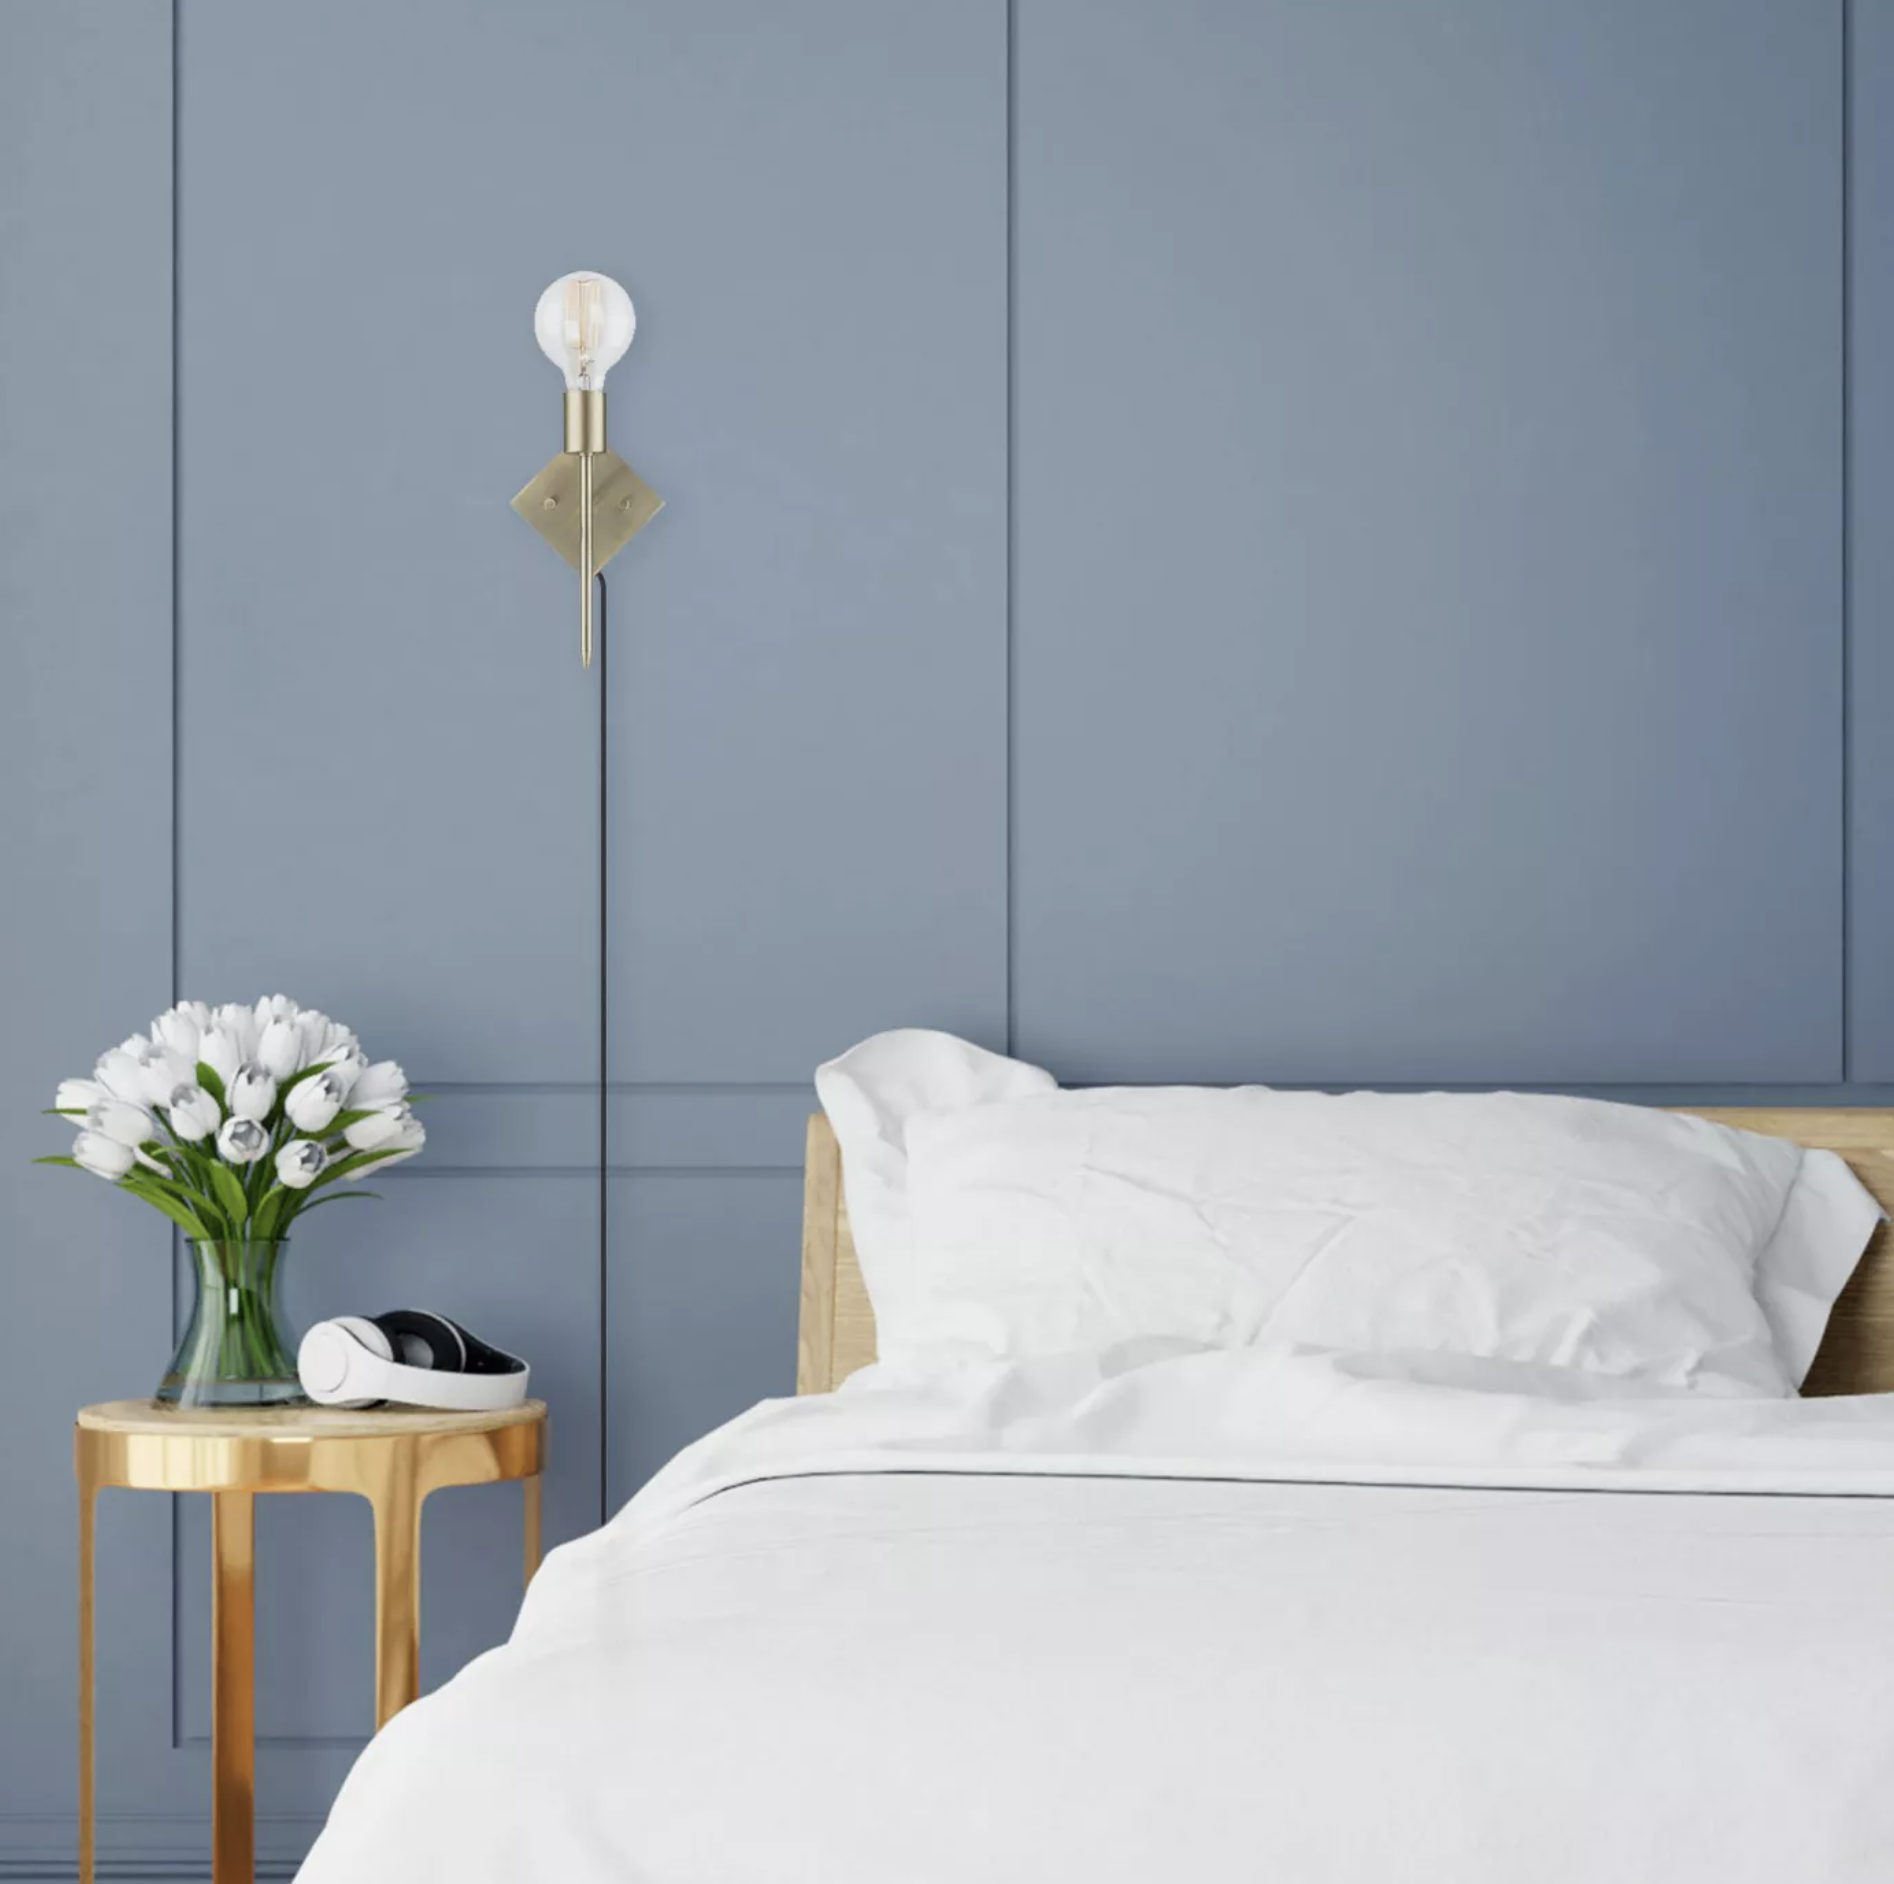 A bedroom with the wall sconce